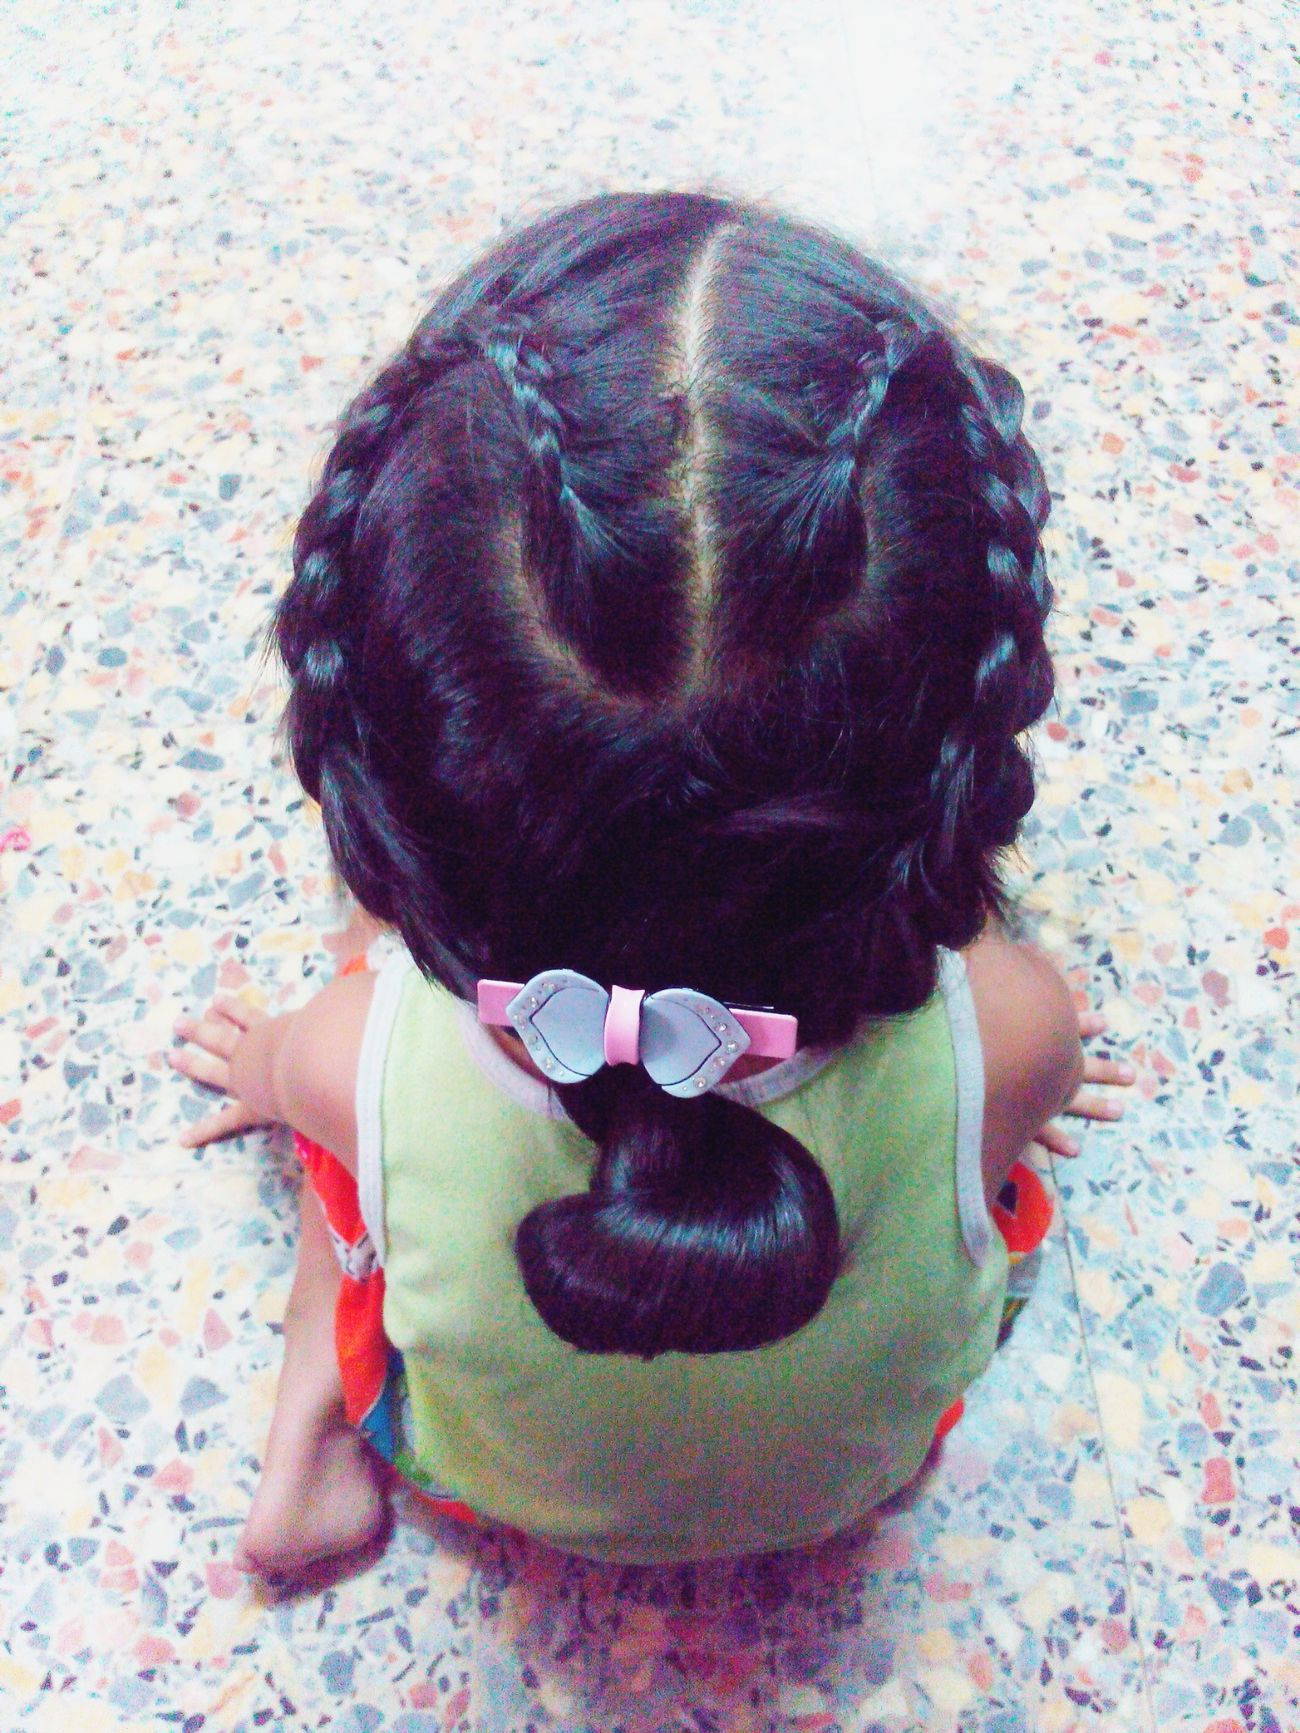 Beauty Redefined Just Child Girl And Her Hairstyle Black Hair Canyouseetheheart Noback